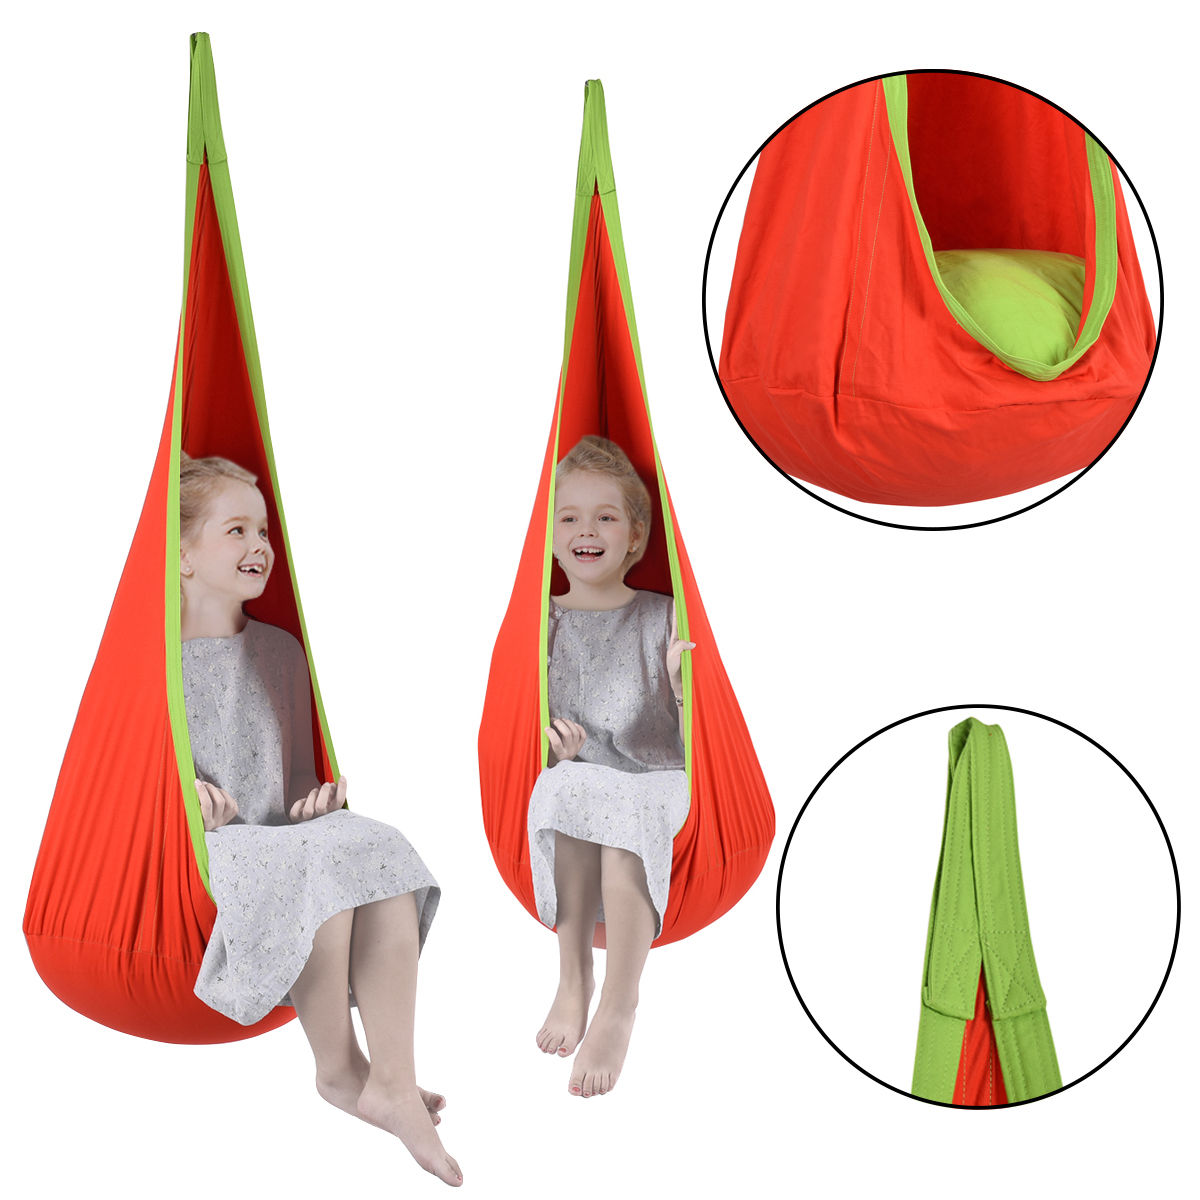 Full nude www raw girls